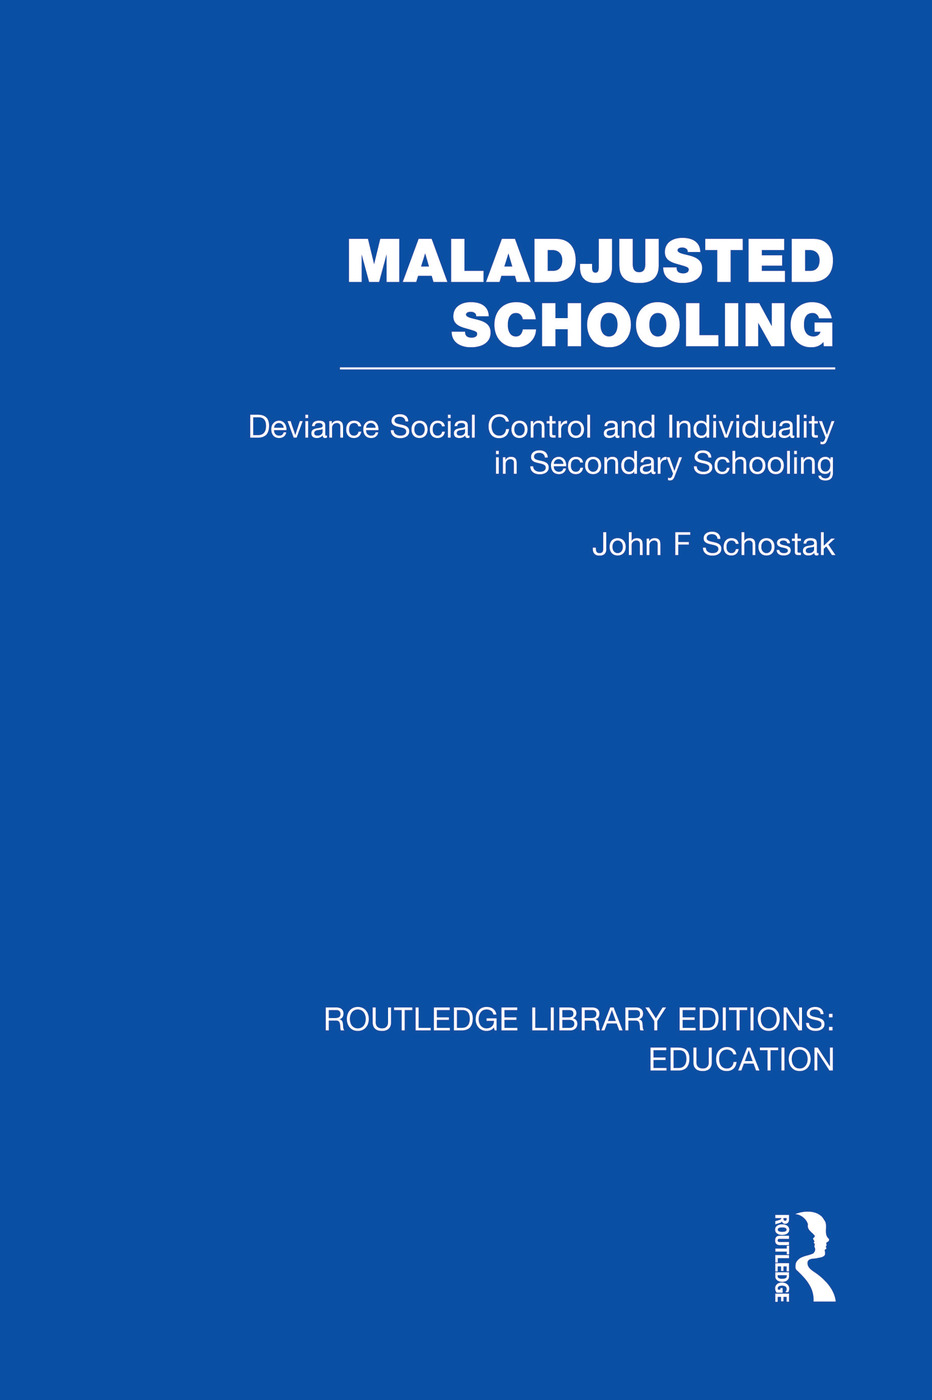 Race, Racism, Deviance and Schooling